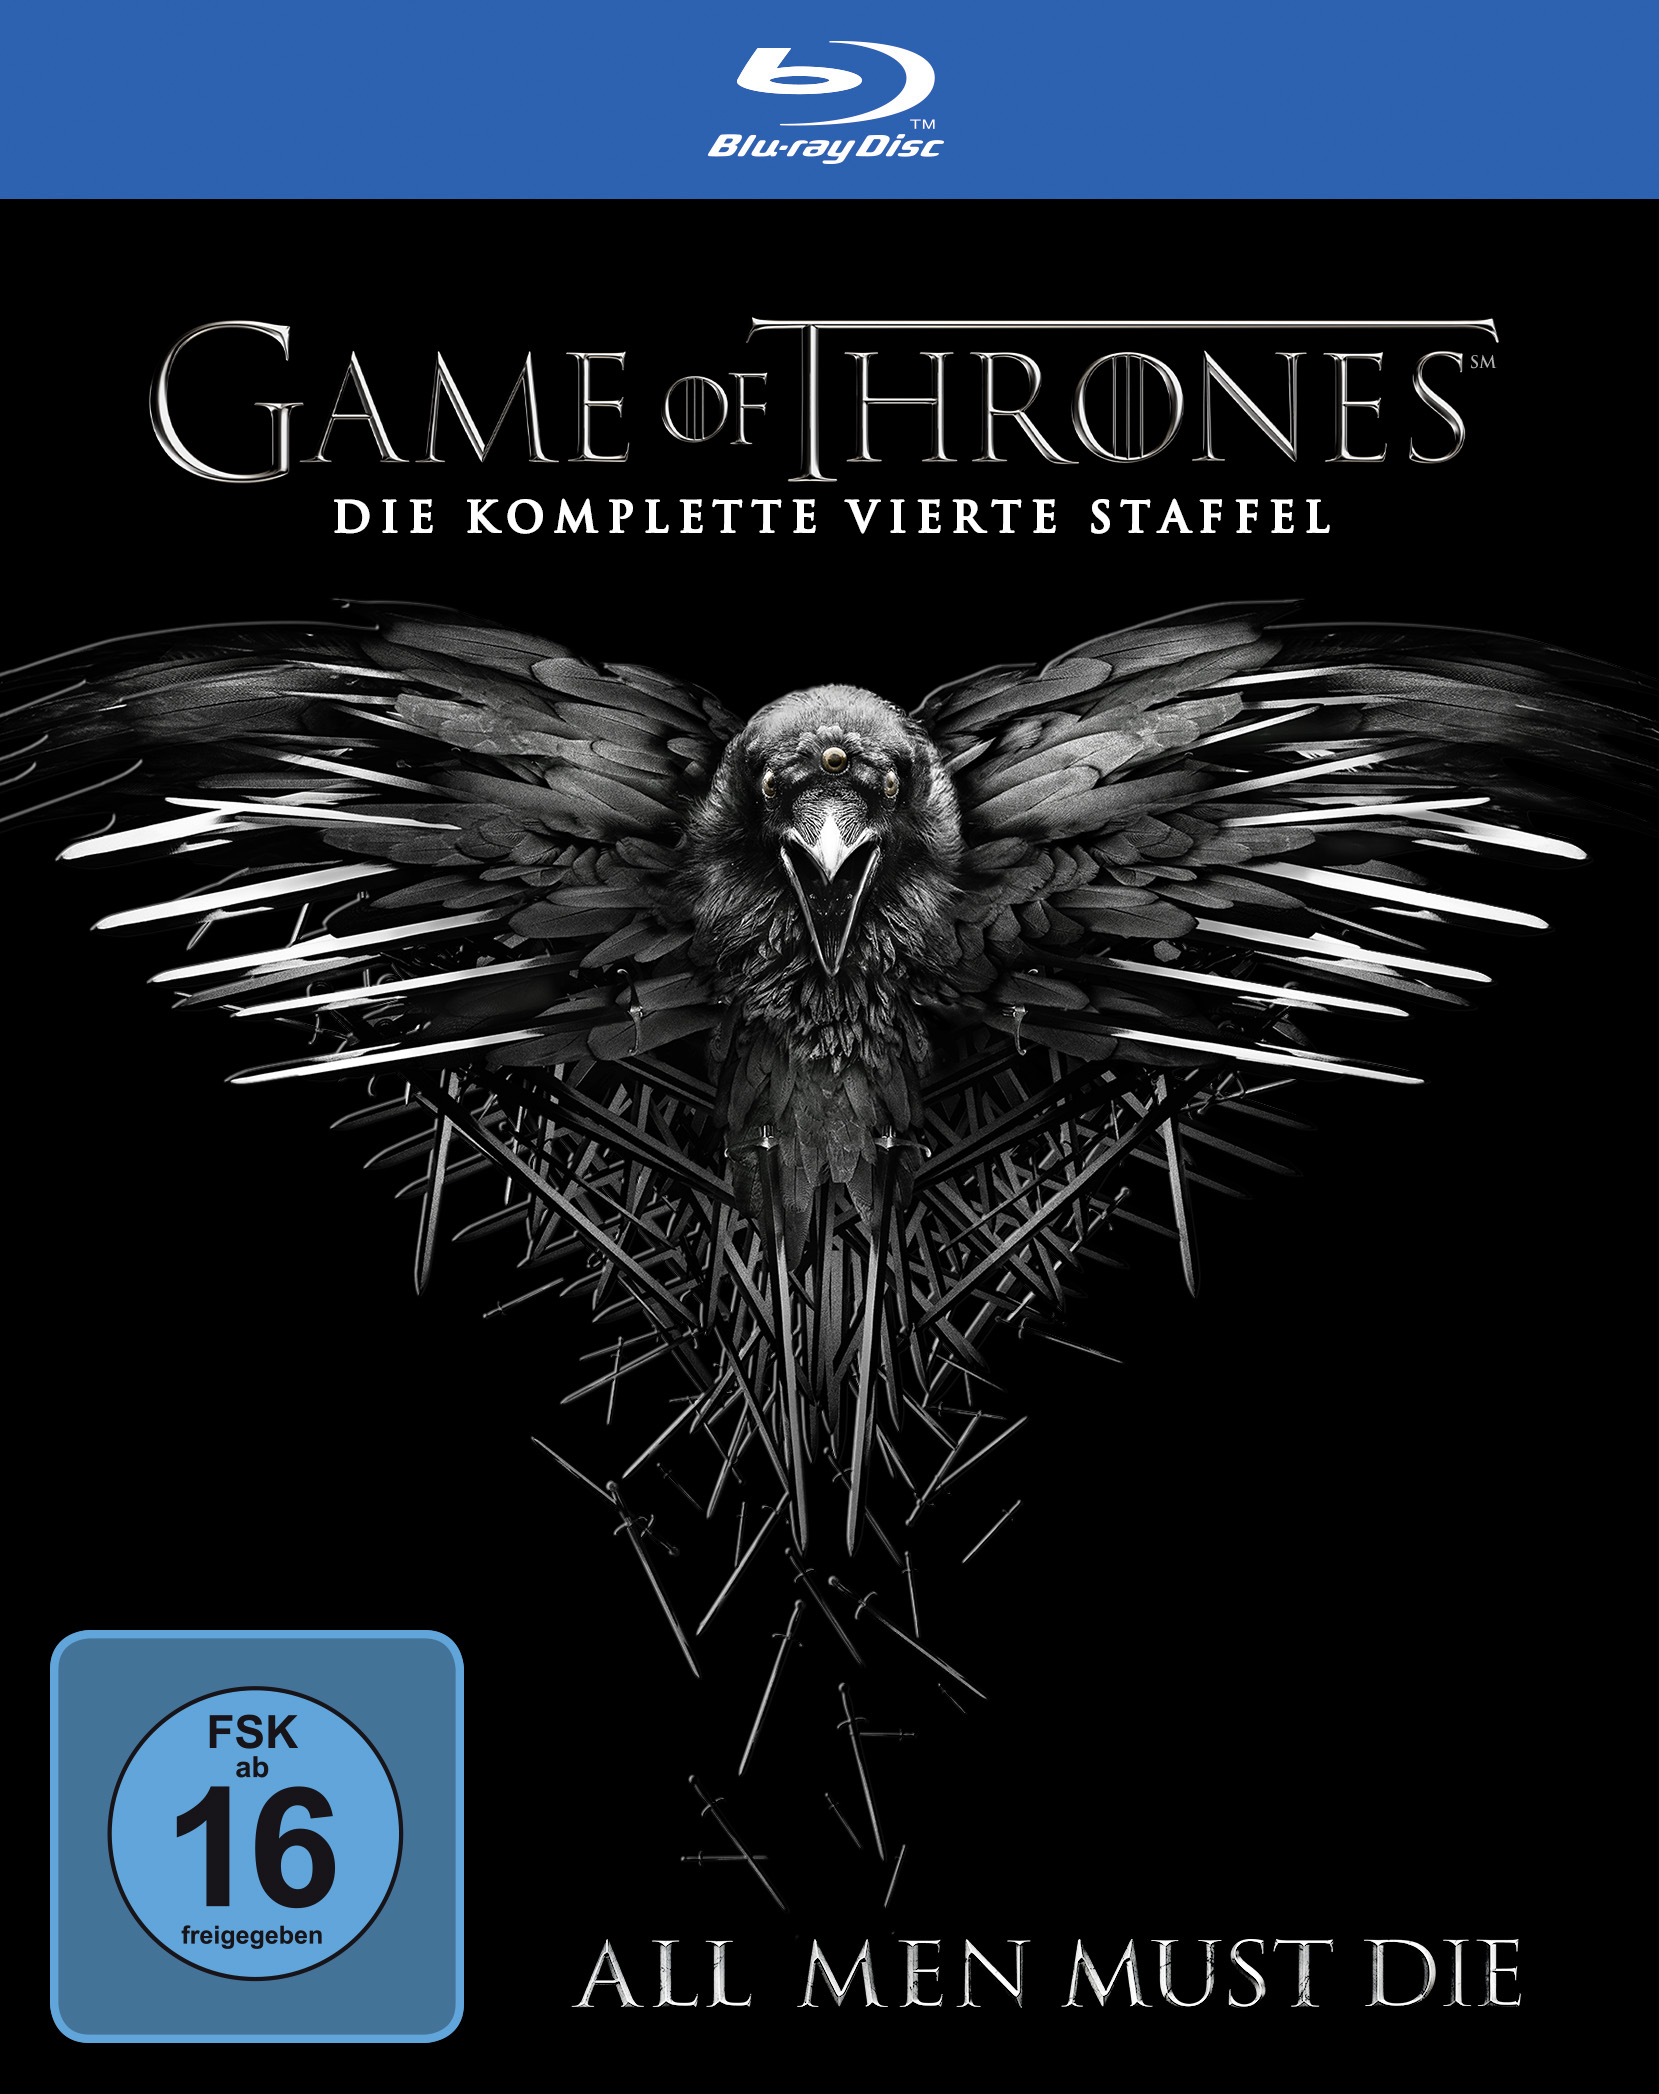 Game Of Thrones Staffel 4 Release